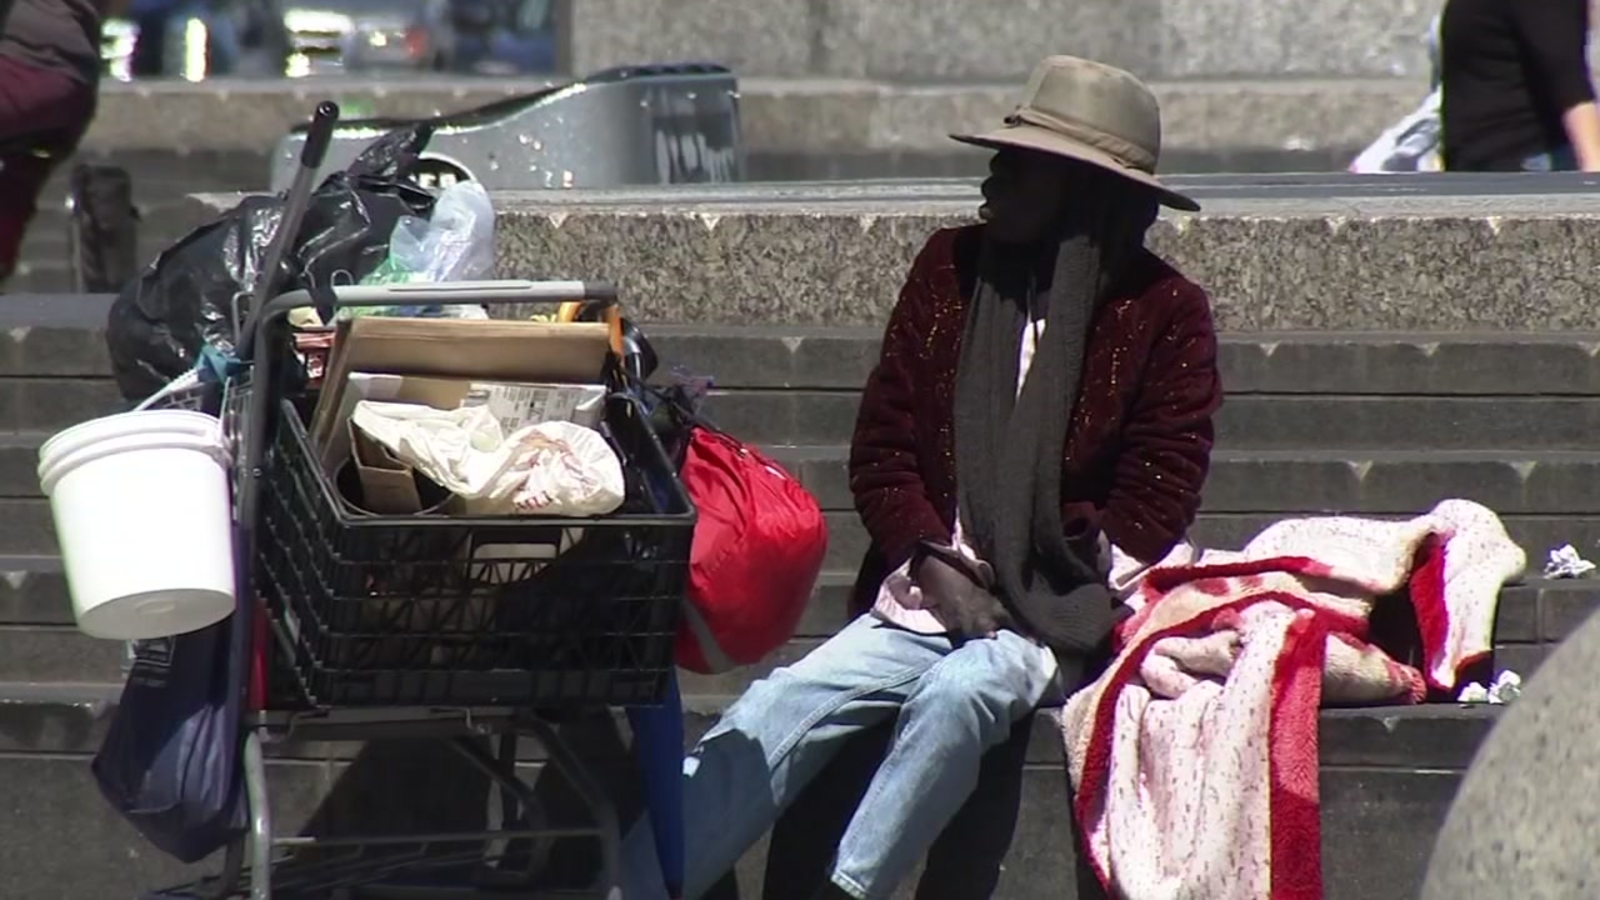 San Francisco non-profit offers solution to region's homeless crisis